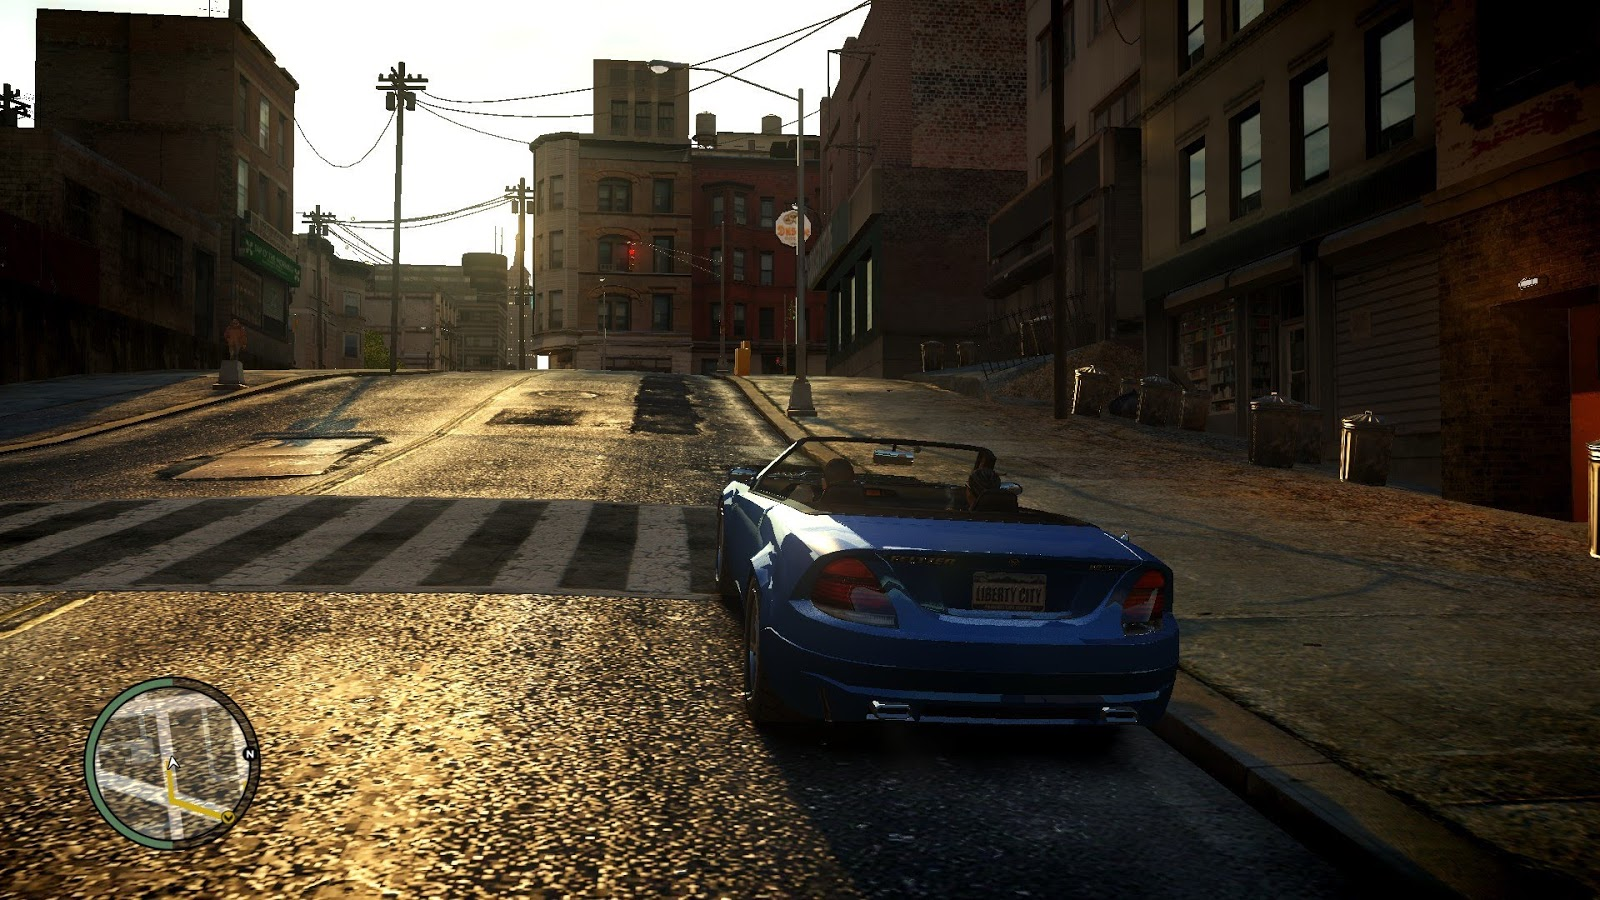 grand theft auto 5 free download for windows 7